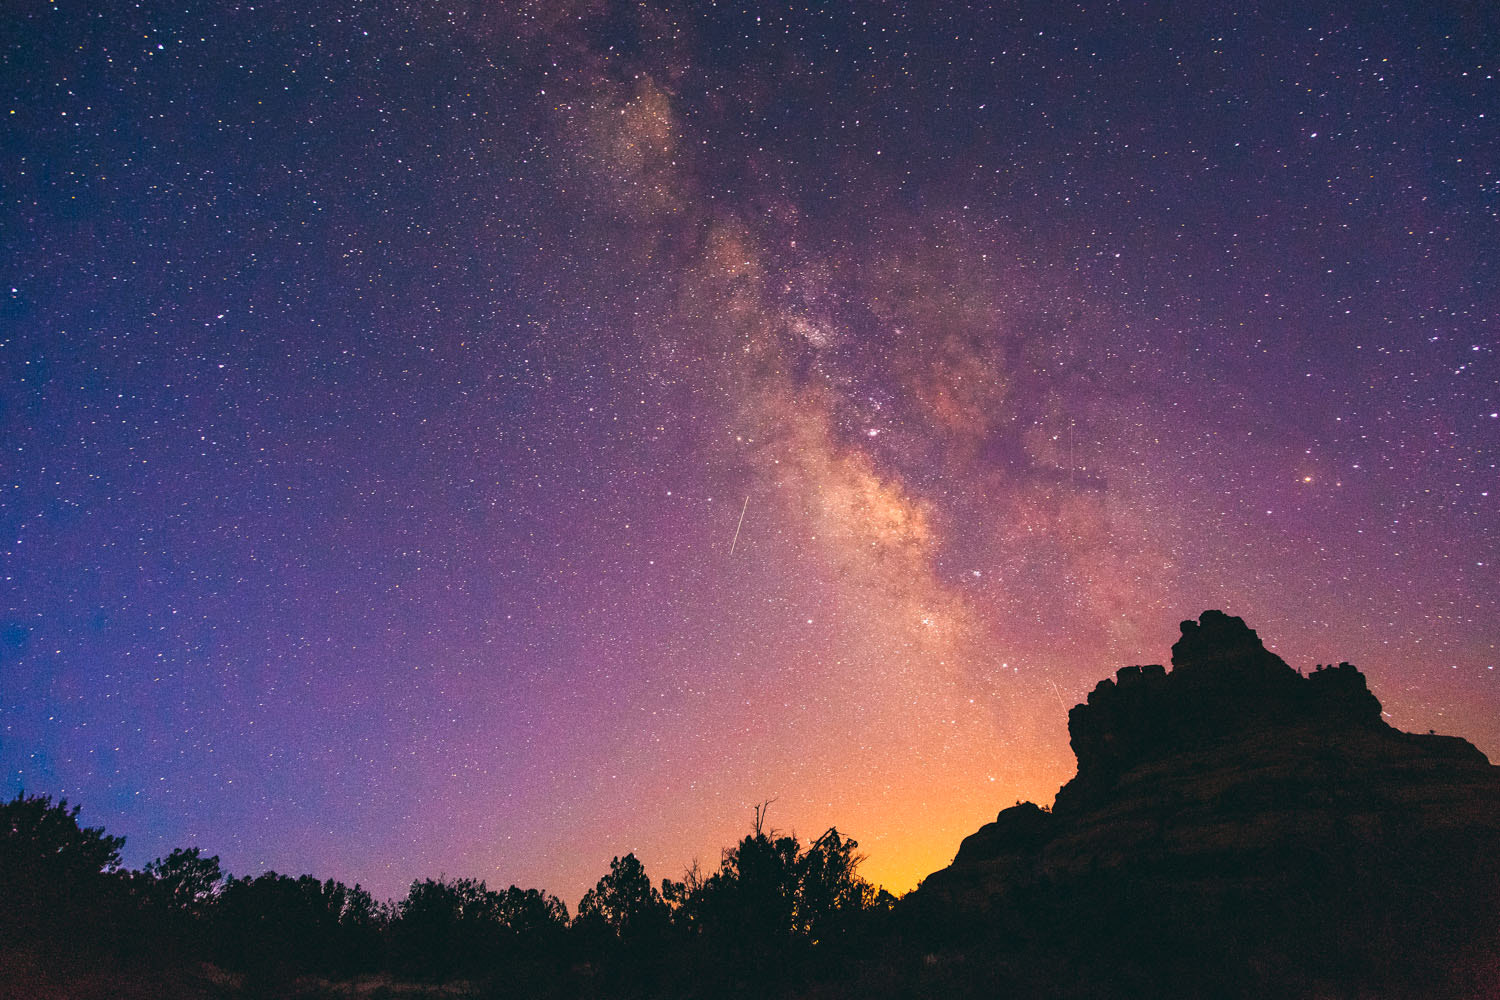 Photograph Meteors & The Milky Way by Brian Furbush on 500px